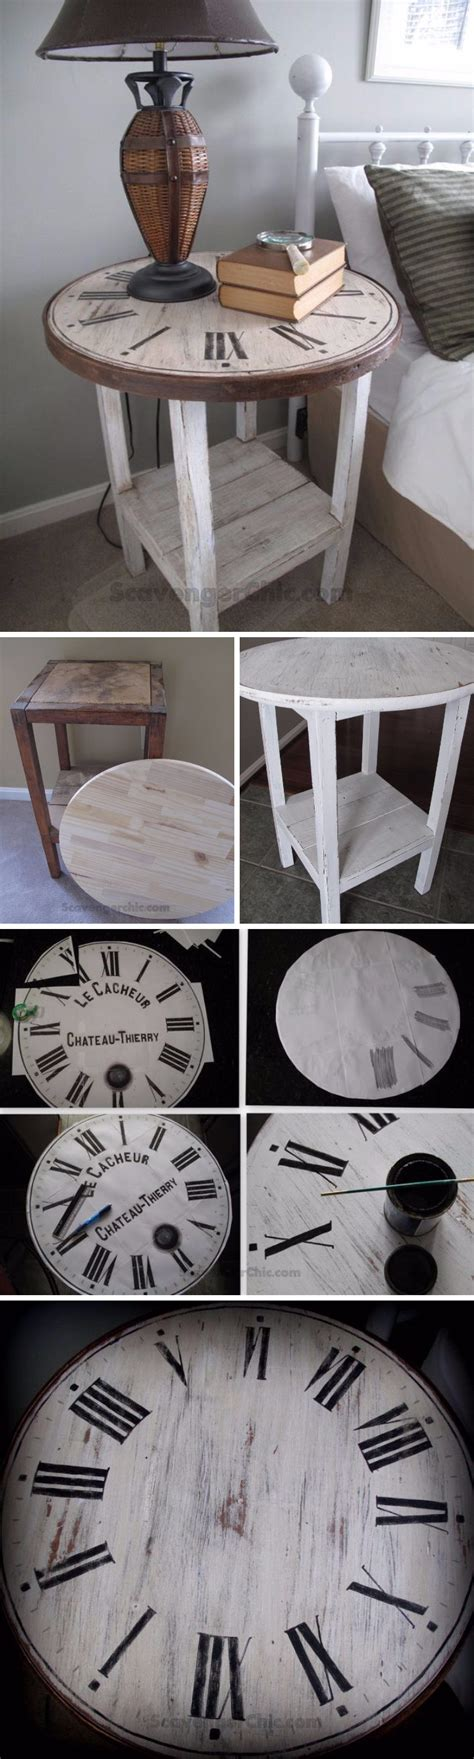 25 diy side table ideas with lots of tutorials 2017 25 diy side table ideas with lots of tutorials 2017